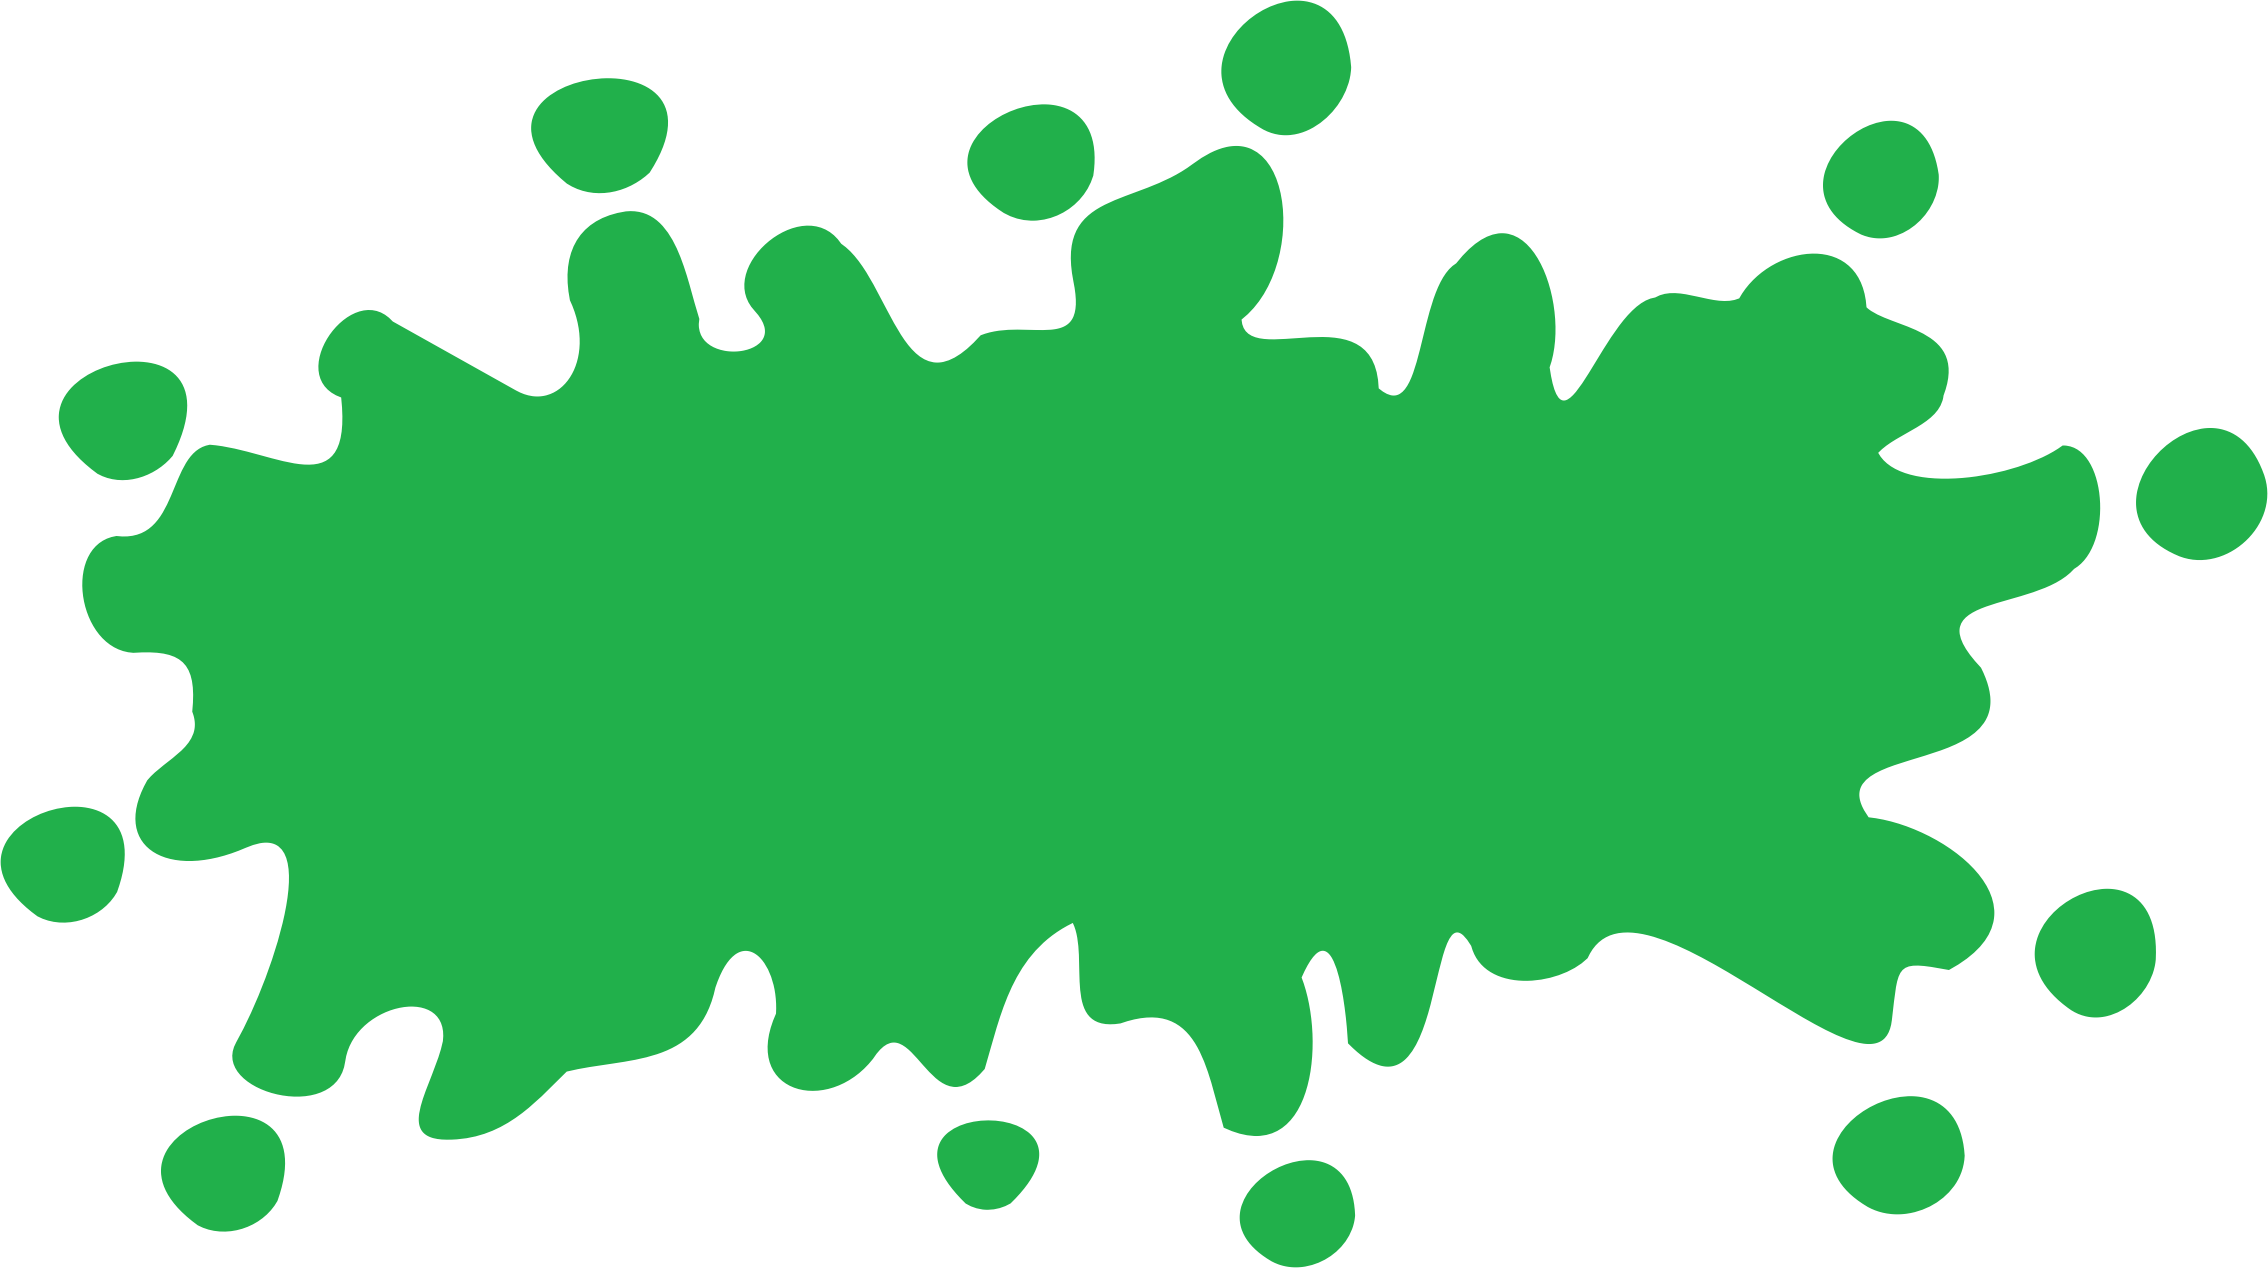 Green splat png. Nicholasjudy icons free and